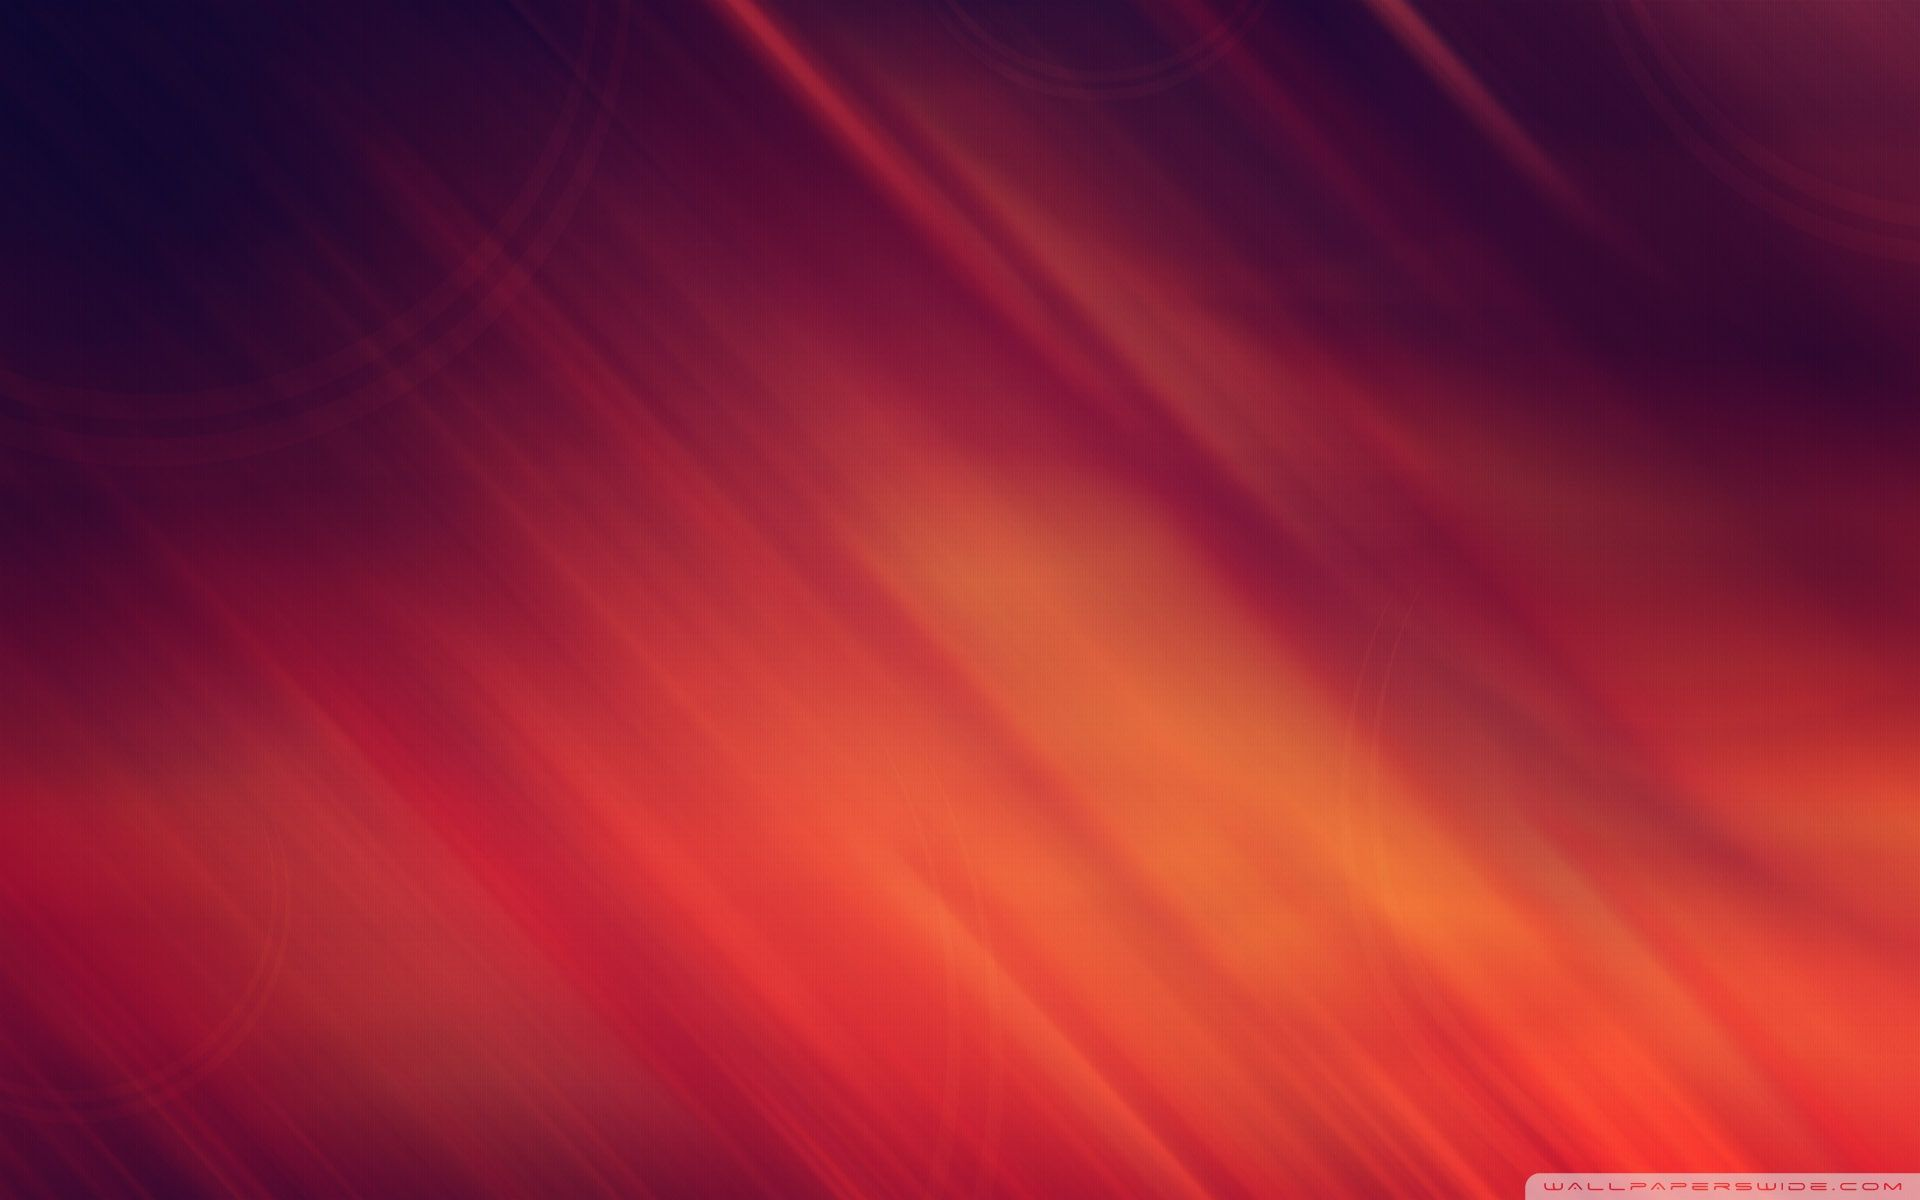 reddish brown background - Google Search   Charlotte Exton ... for Red Brown Background Wallpaper  110zmd